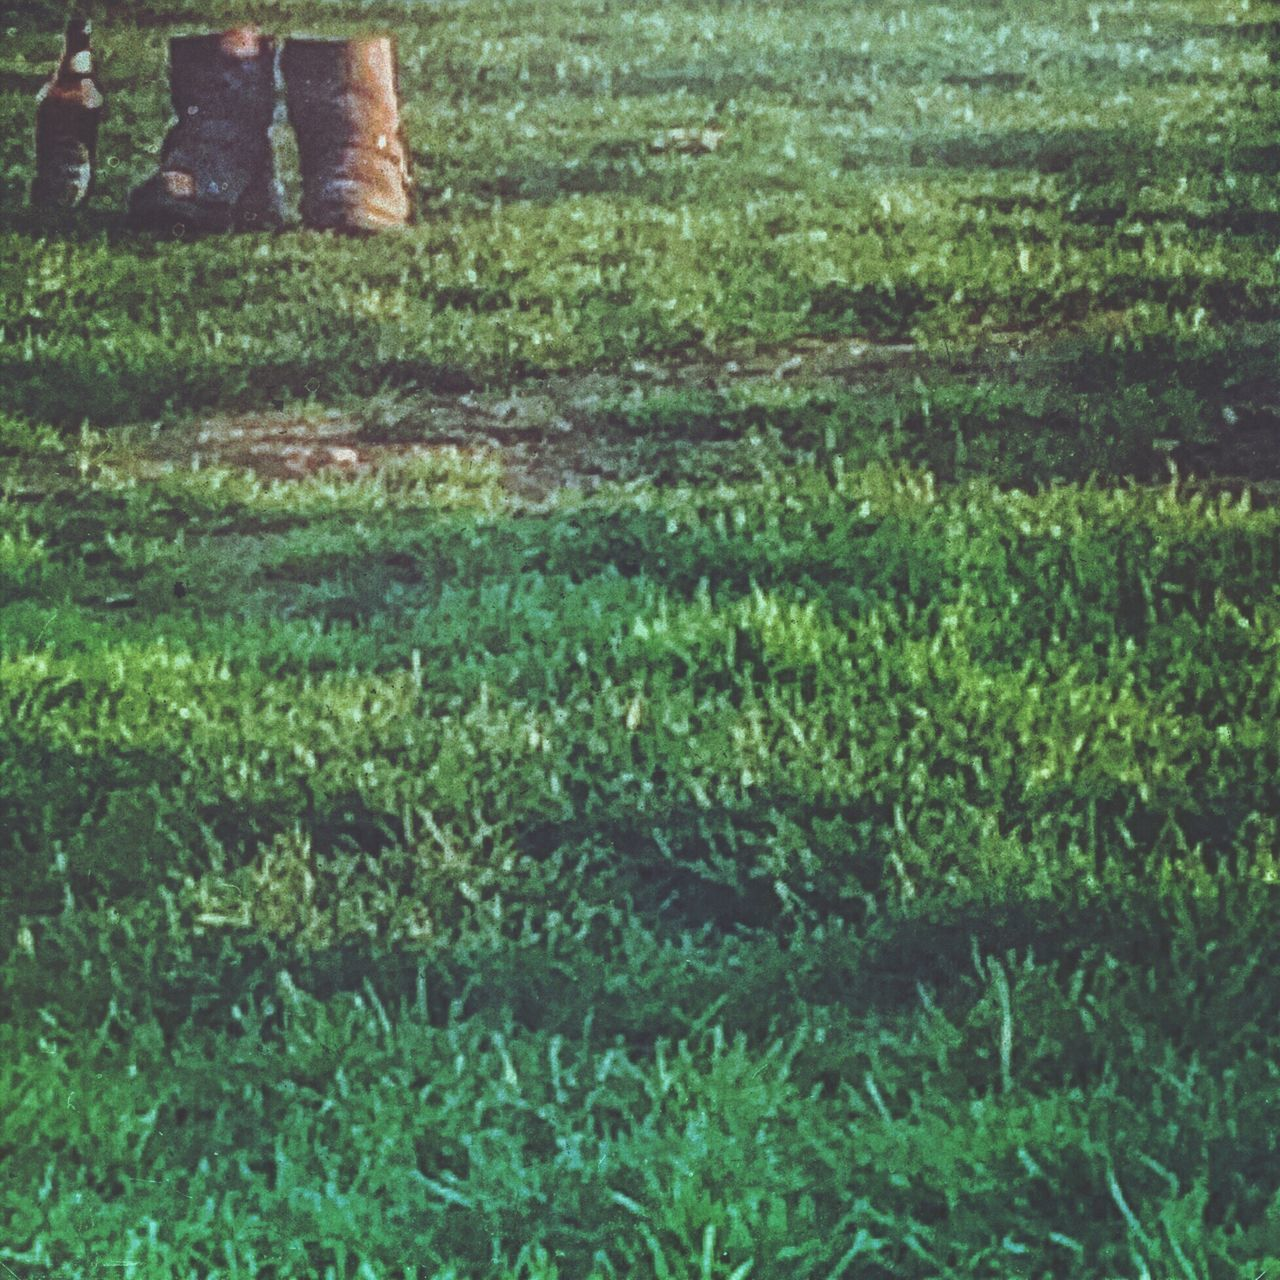 grass, day, nature, green color, no people, reflection, outdoors, growth, close-up, freshness